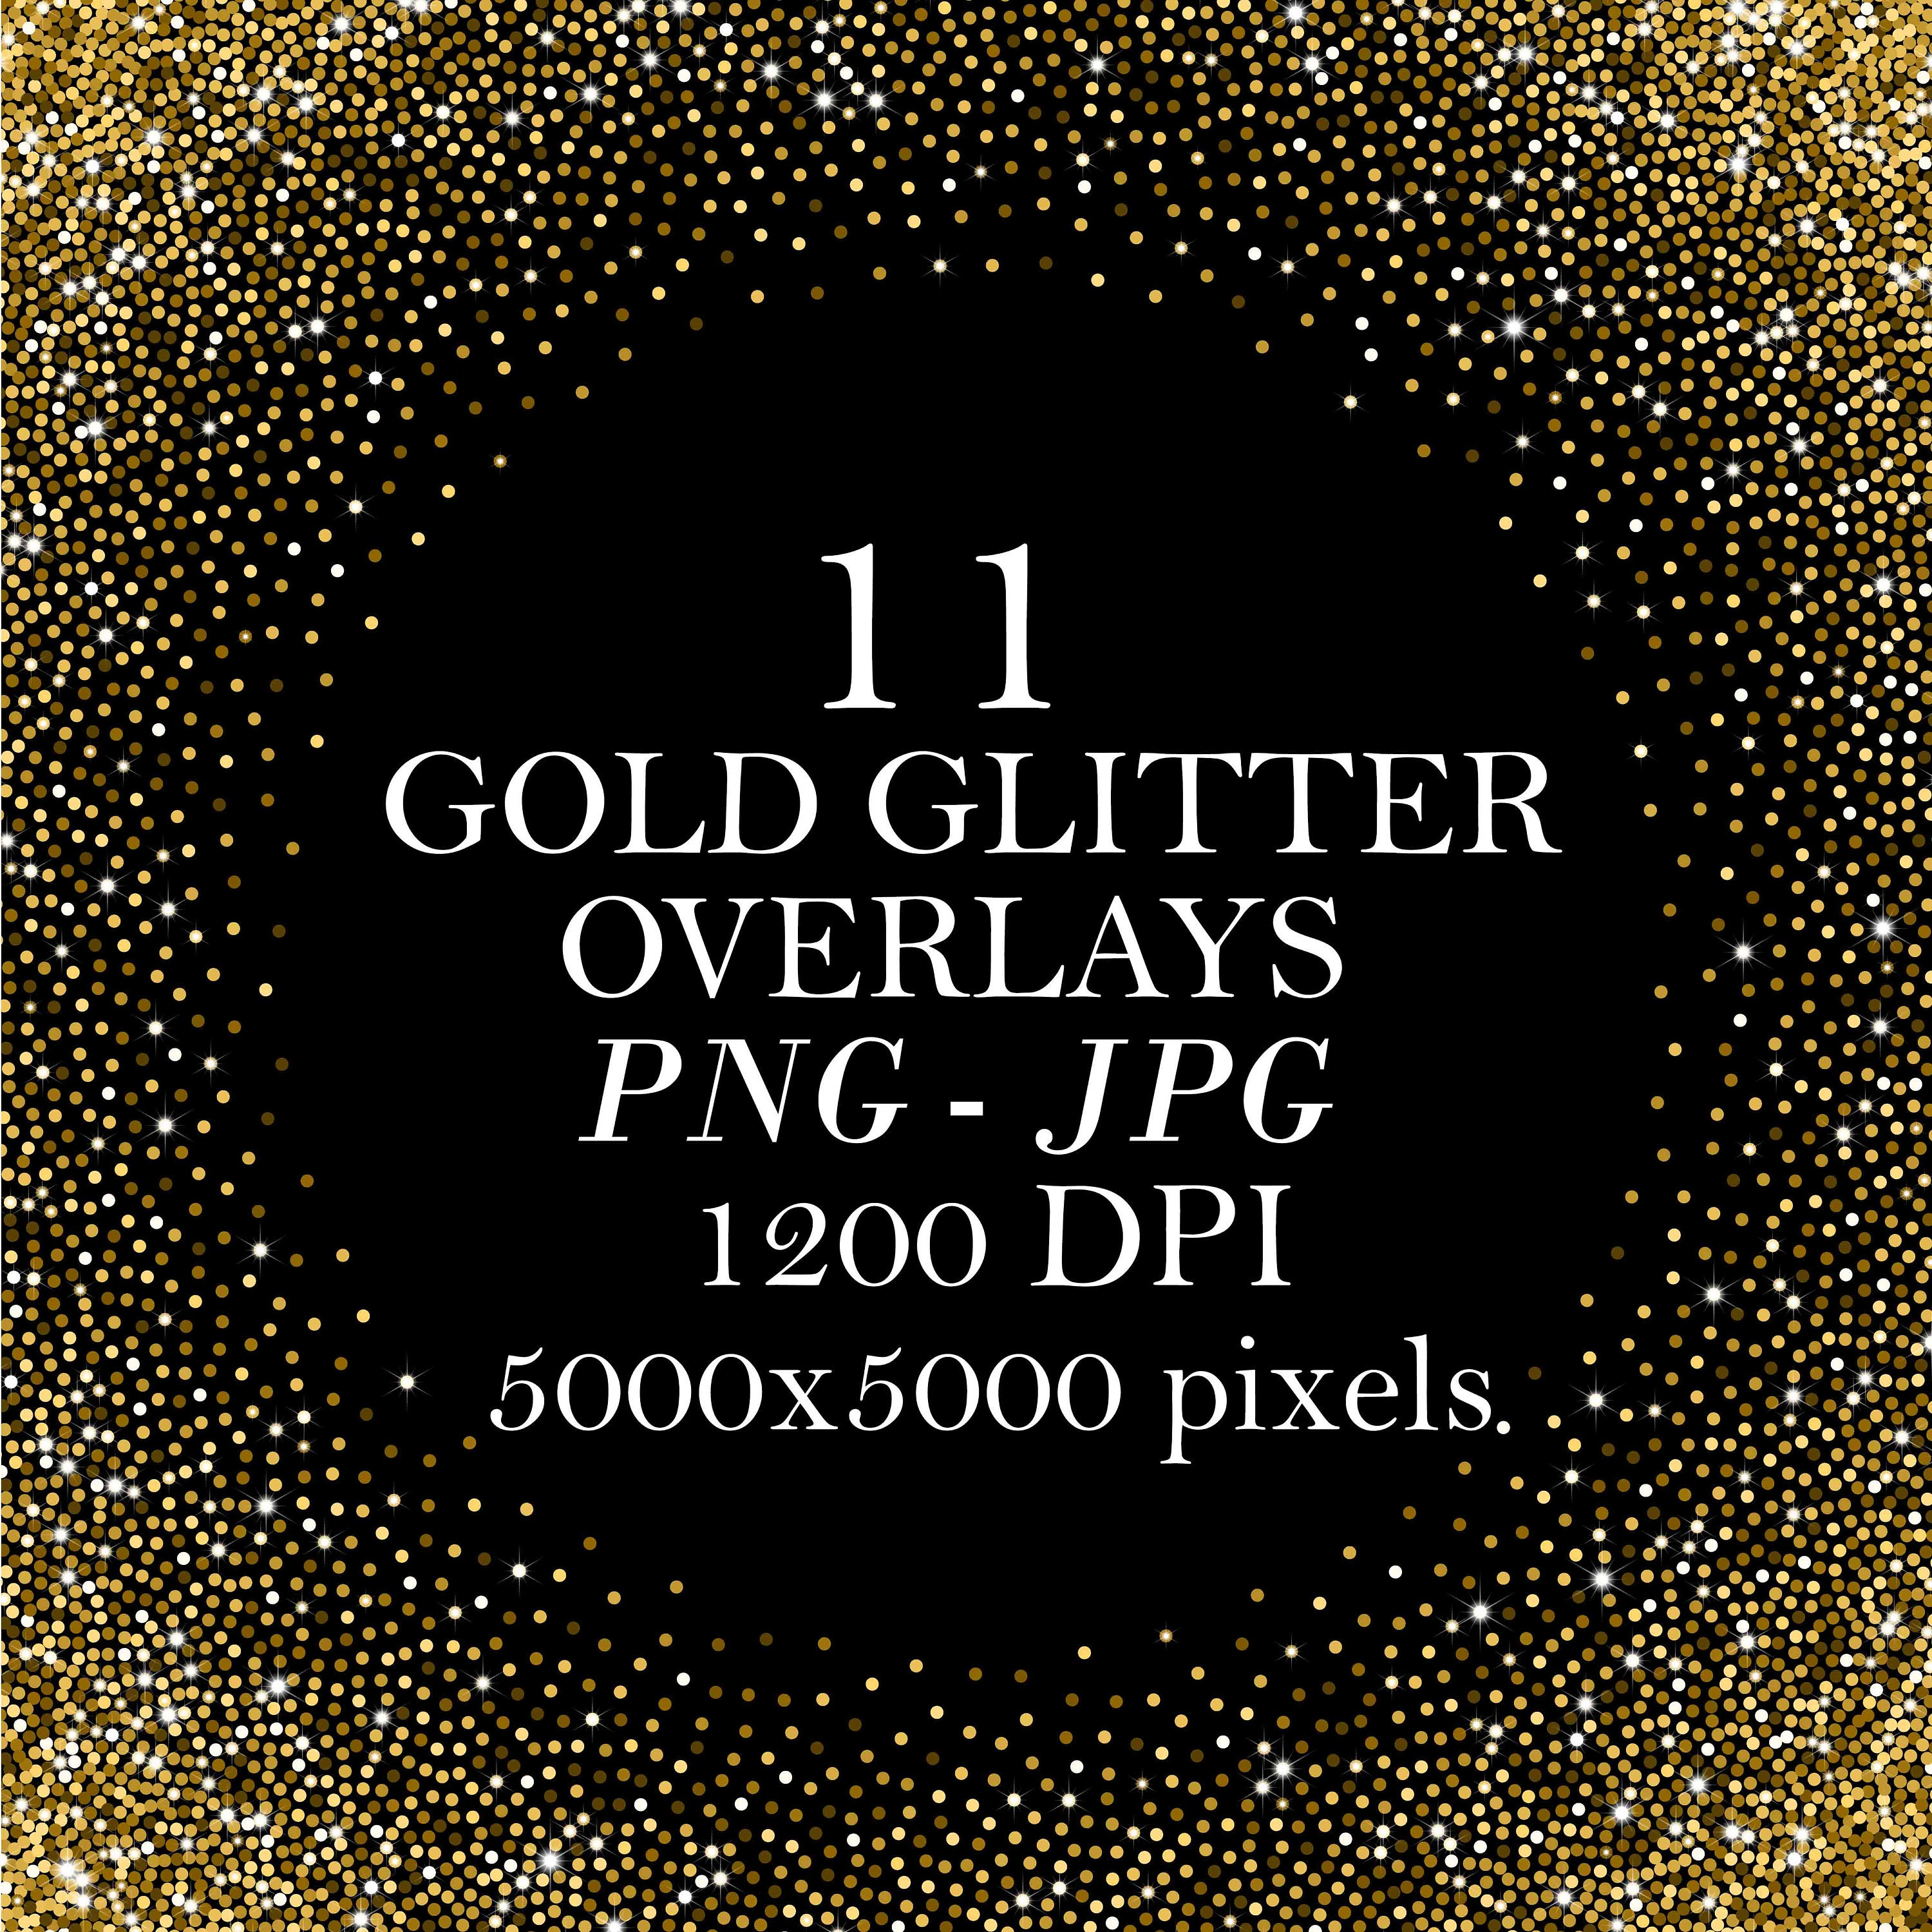 11 Gold Glitter Overlays, Golden Texture Background, Photoshop Overlays,  Glitter backdrop, Confetti overlays, gold glitter frames, PNG files